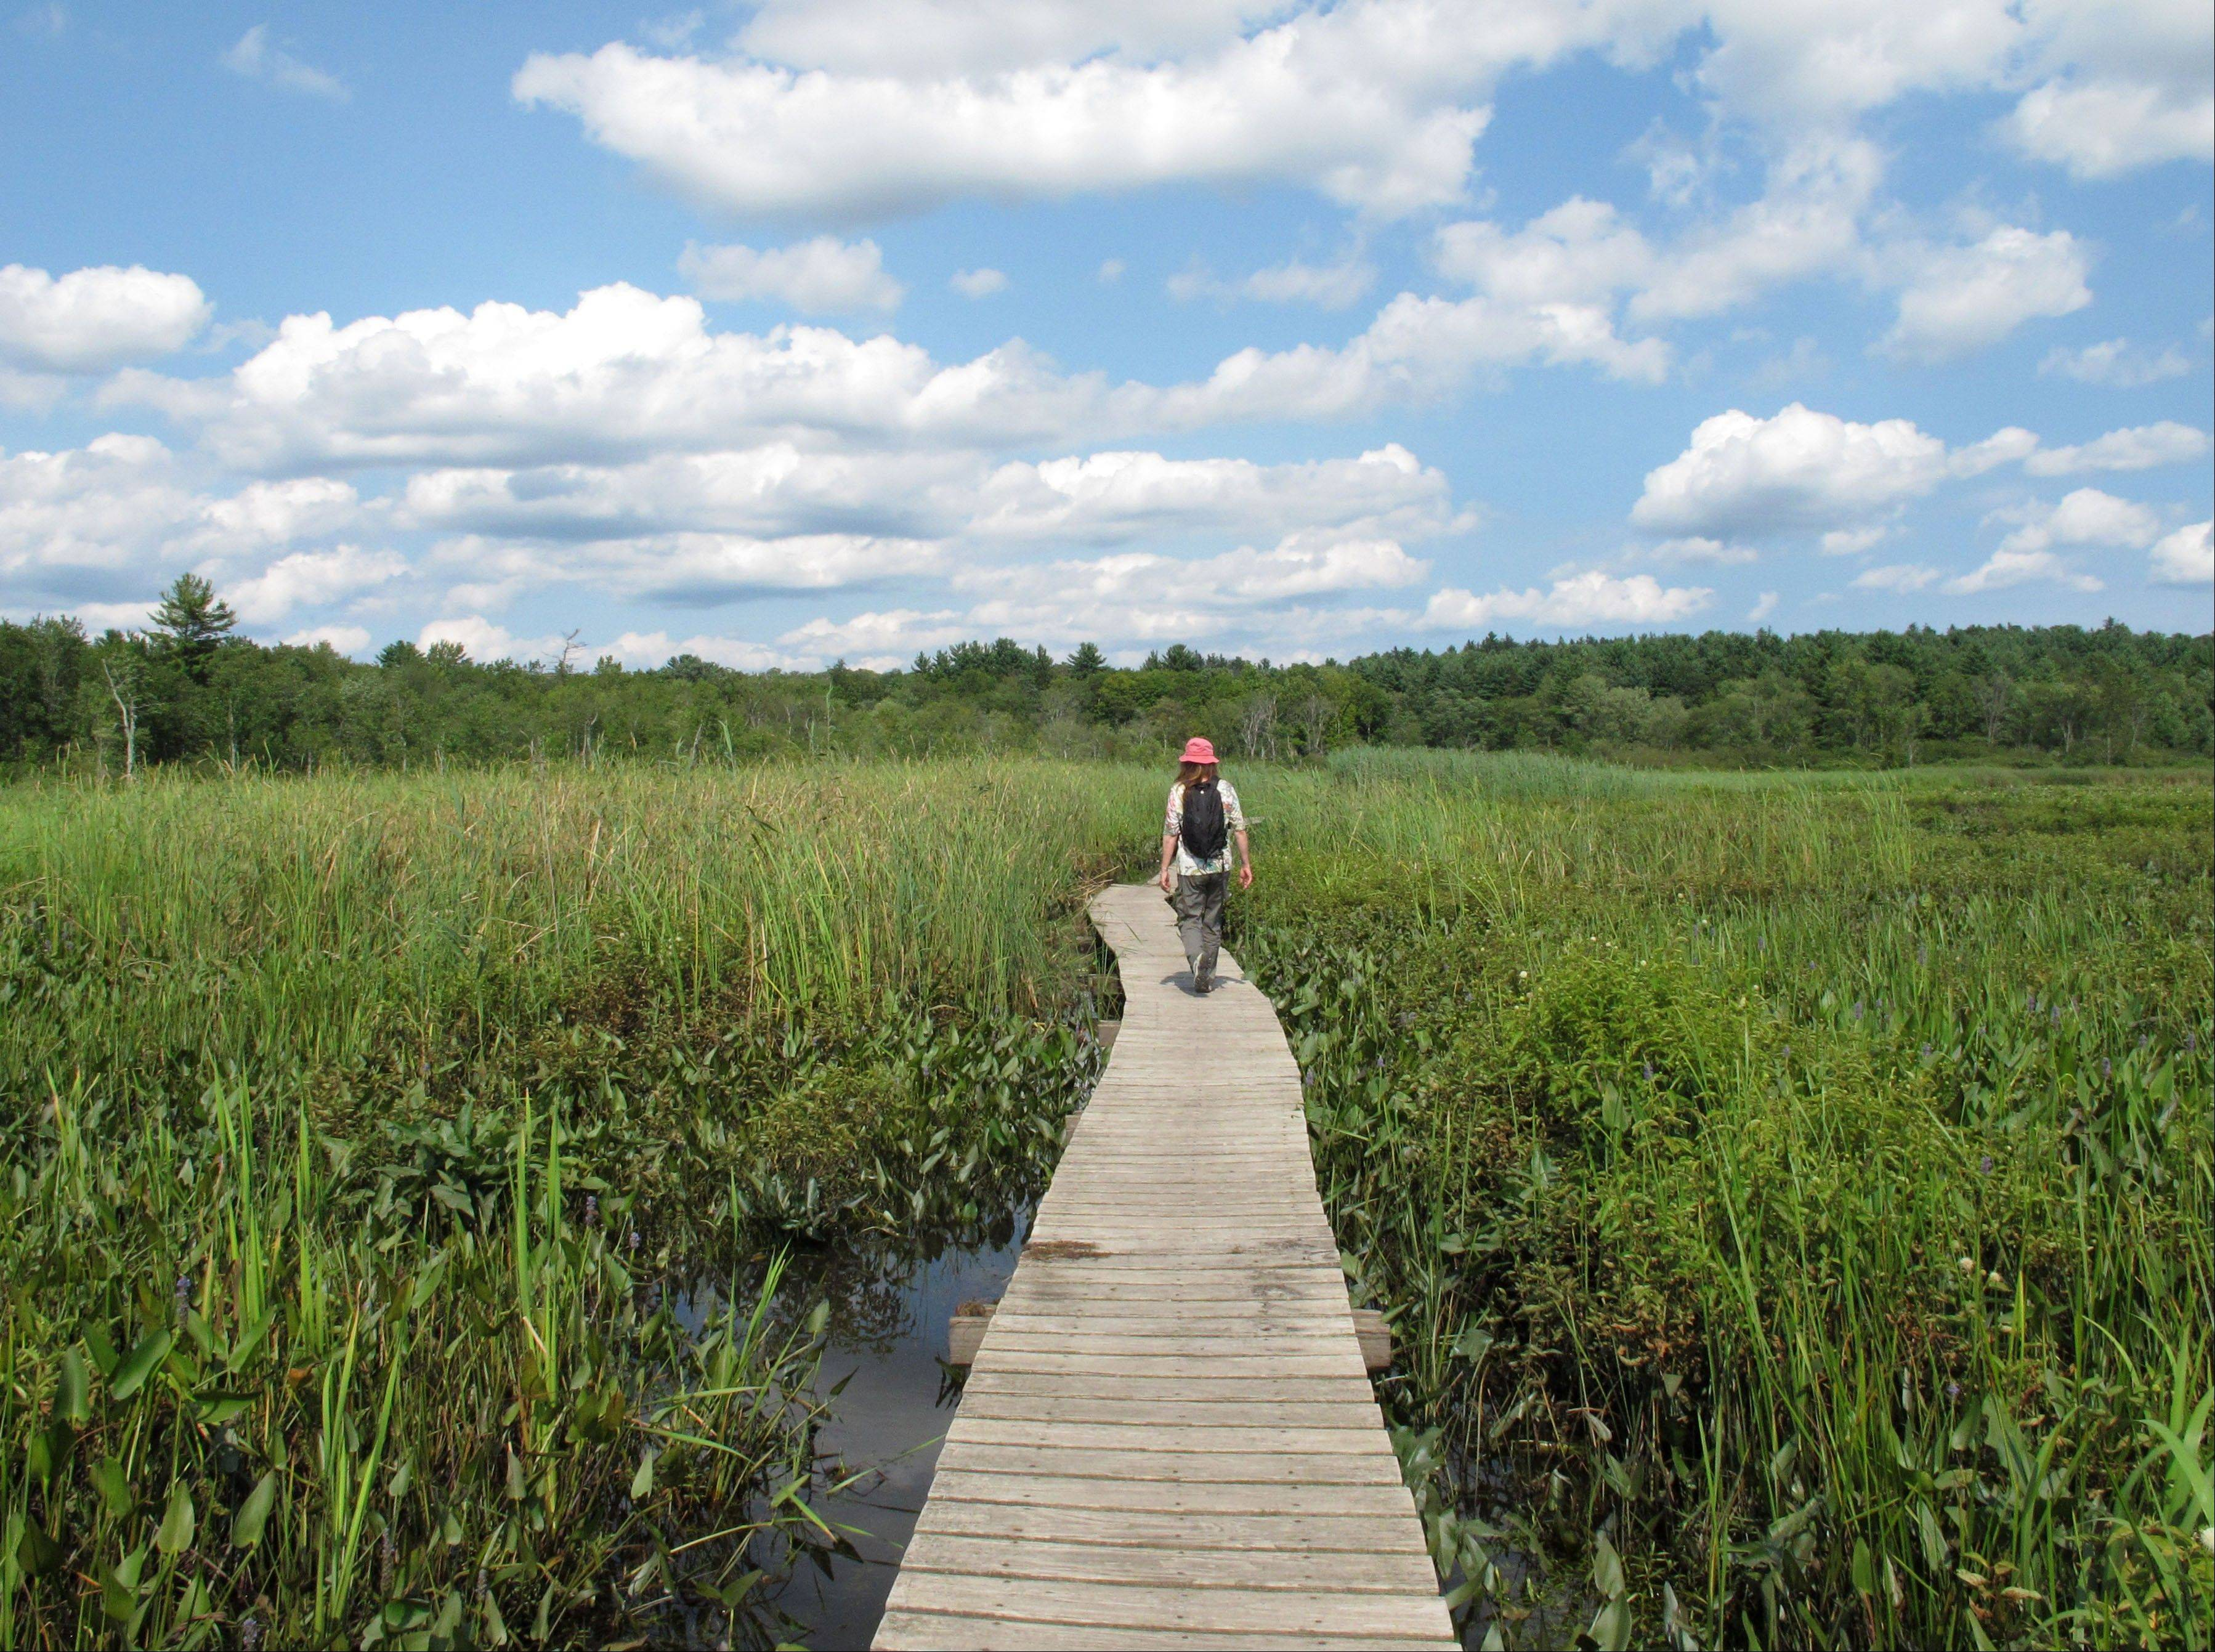 Hiker Marianne Denniston walks across the boardwalk of the Little Pond marsh trail at the White Memorial Conservation Center in Litchfield, Conn. The wildlife sanctuary, which is set among 4,000 acres of fields, ponds and woodland, offers a nature museum, campgrounds, boating and bird-watching.